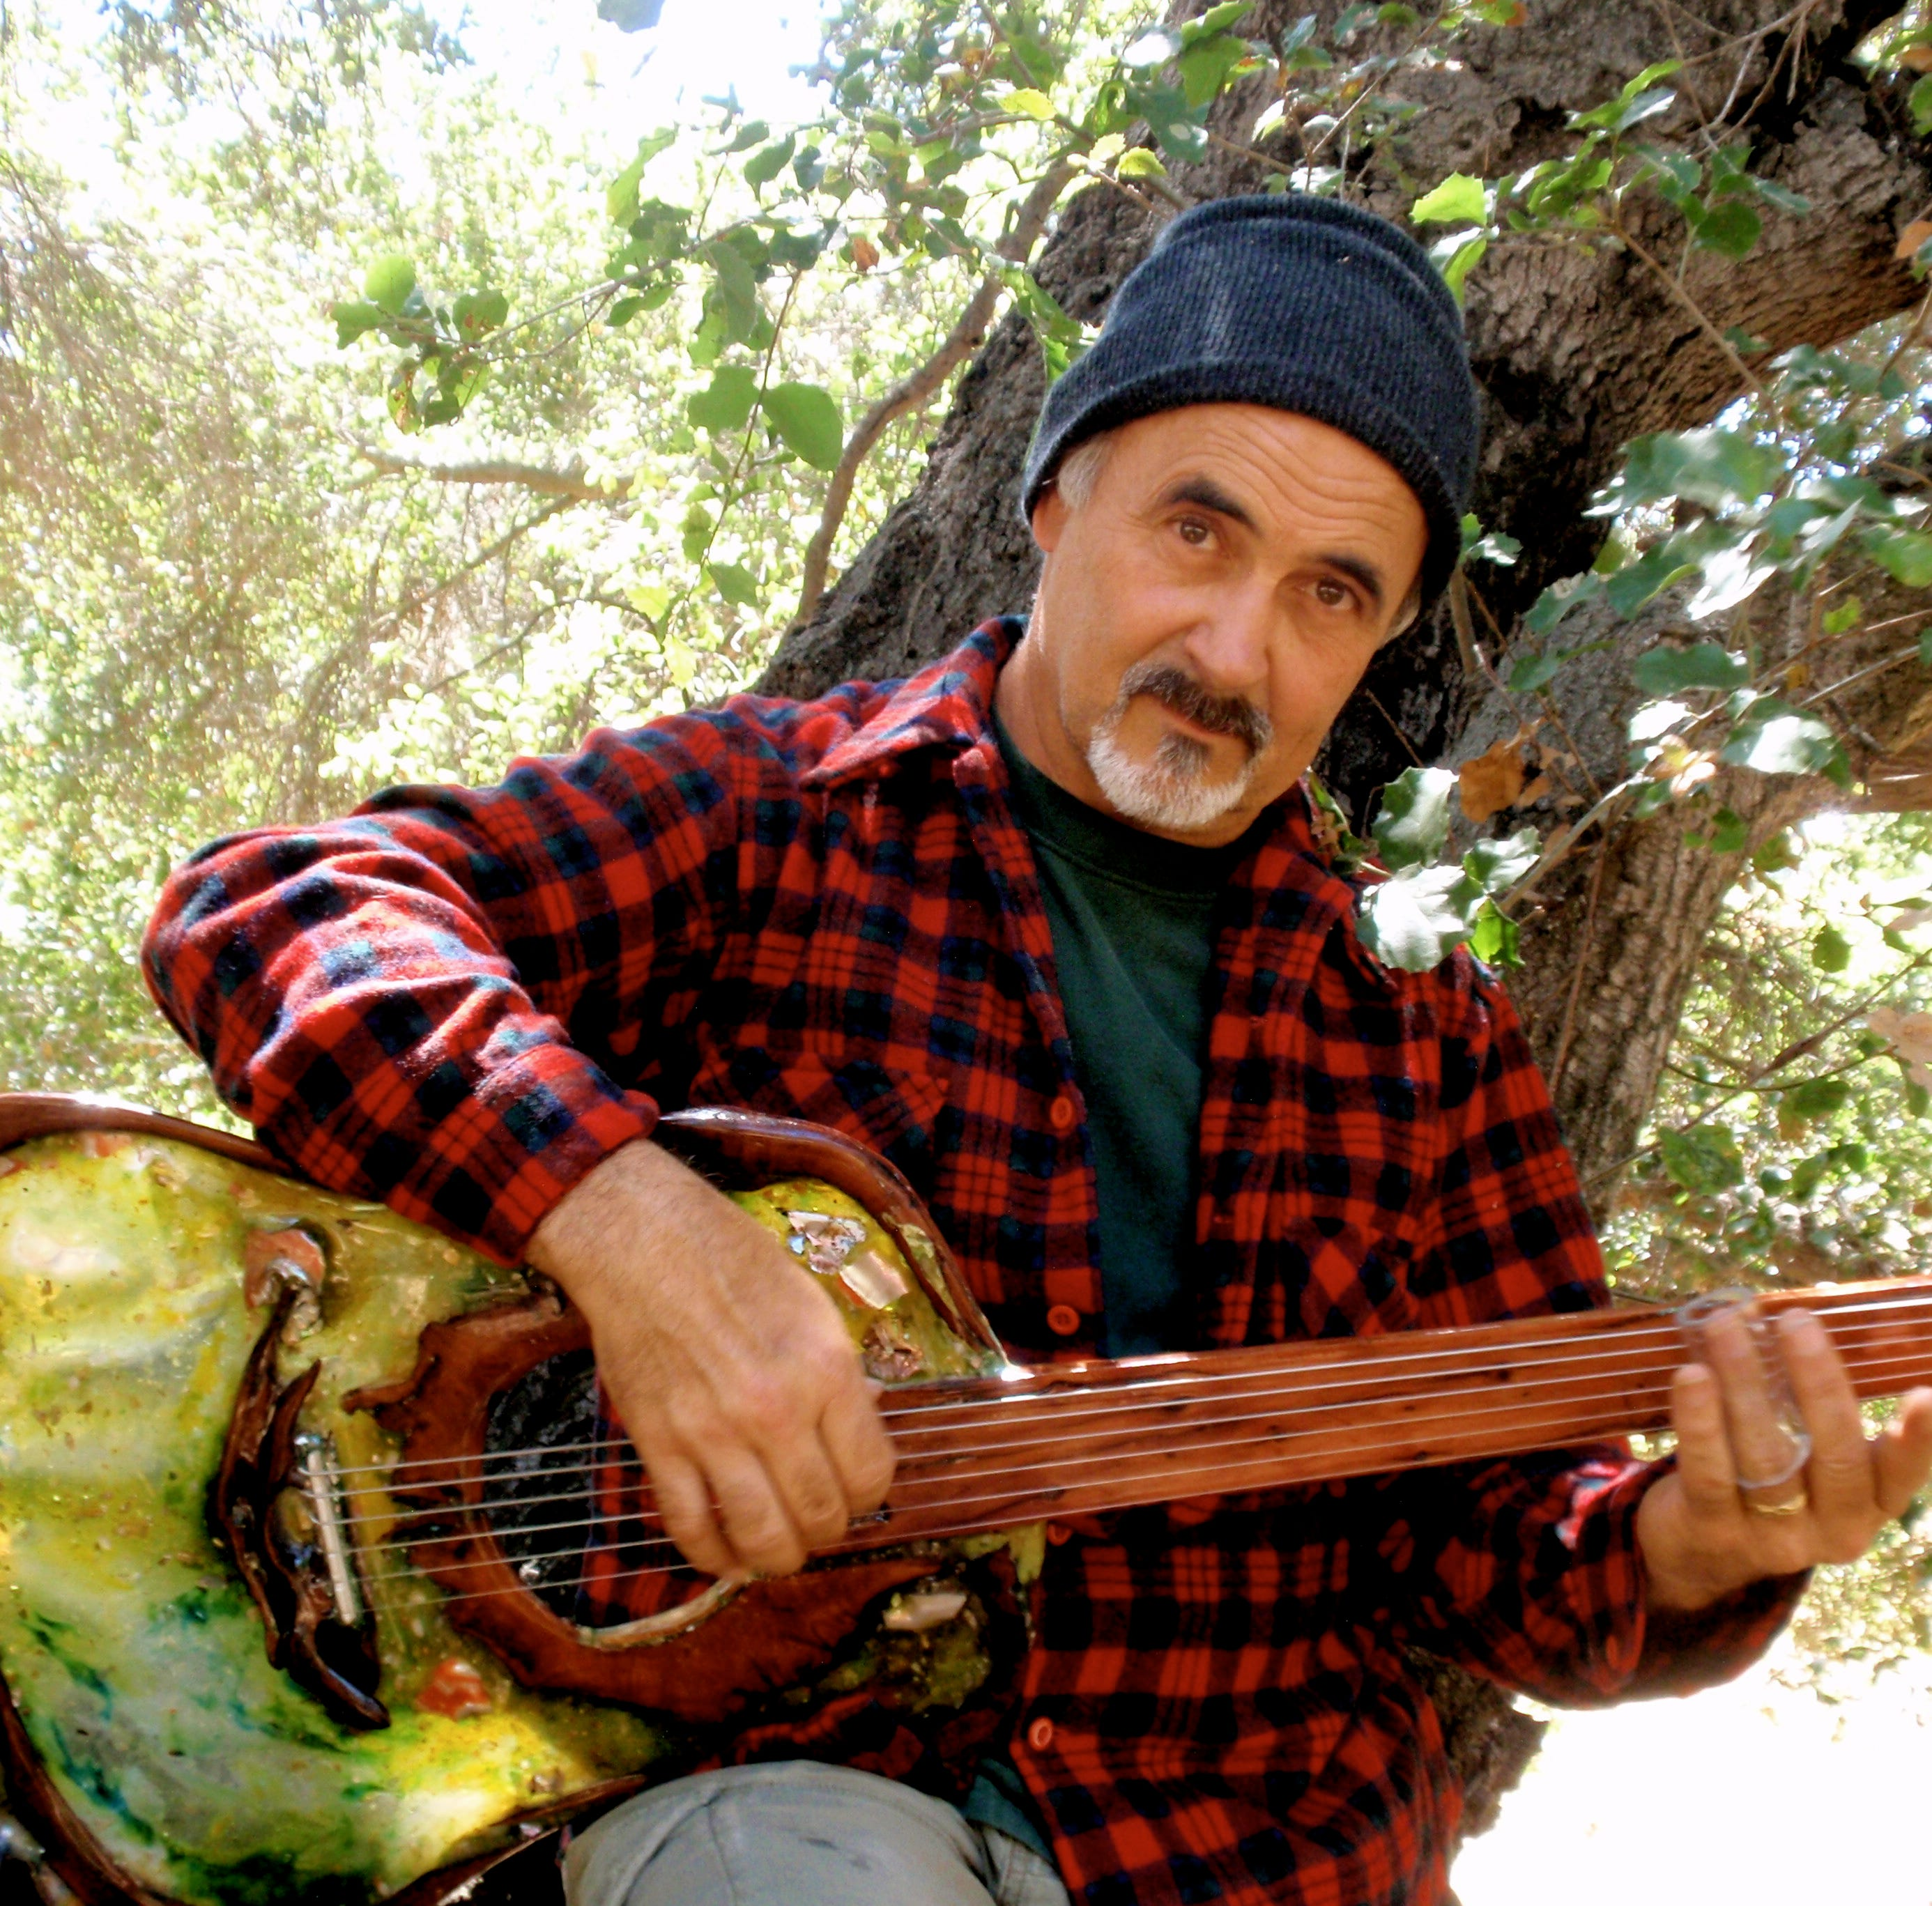 Ojai resident J. Peter Boles will perform at Saturday's folk festival at the Museum of Ventura County's Agriculture Museum in Santa Paula.